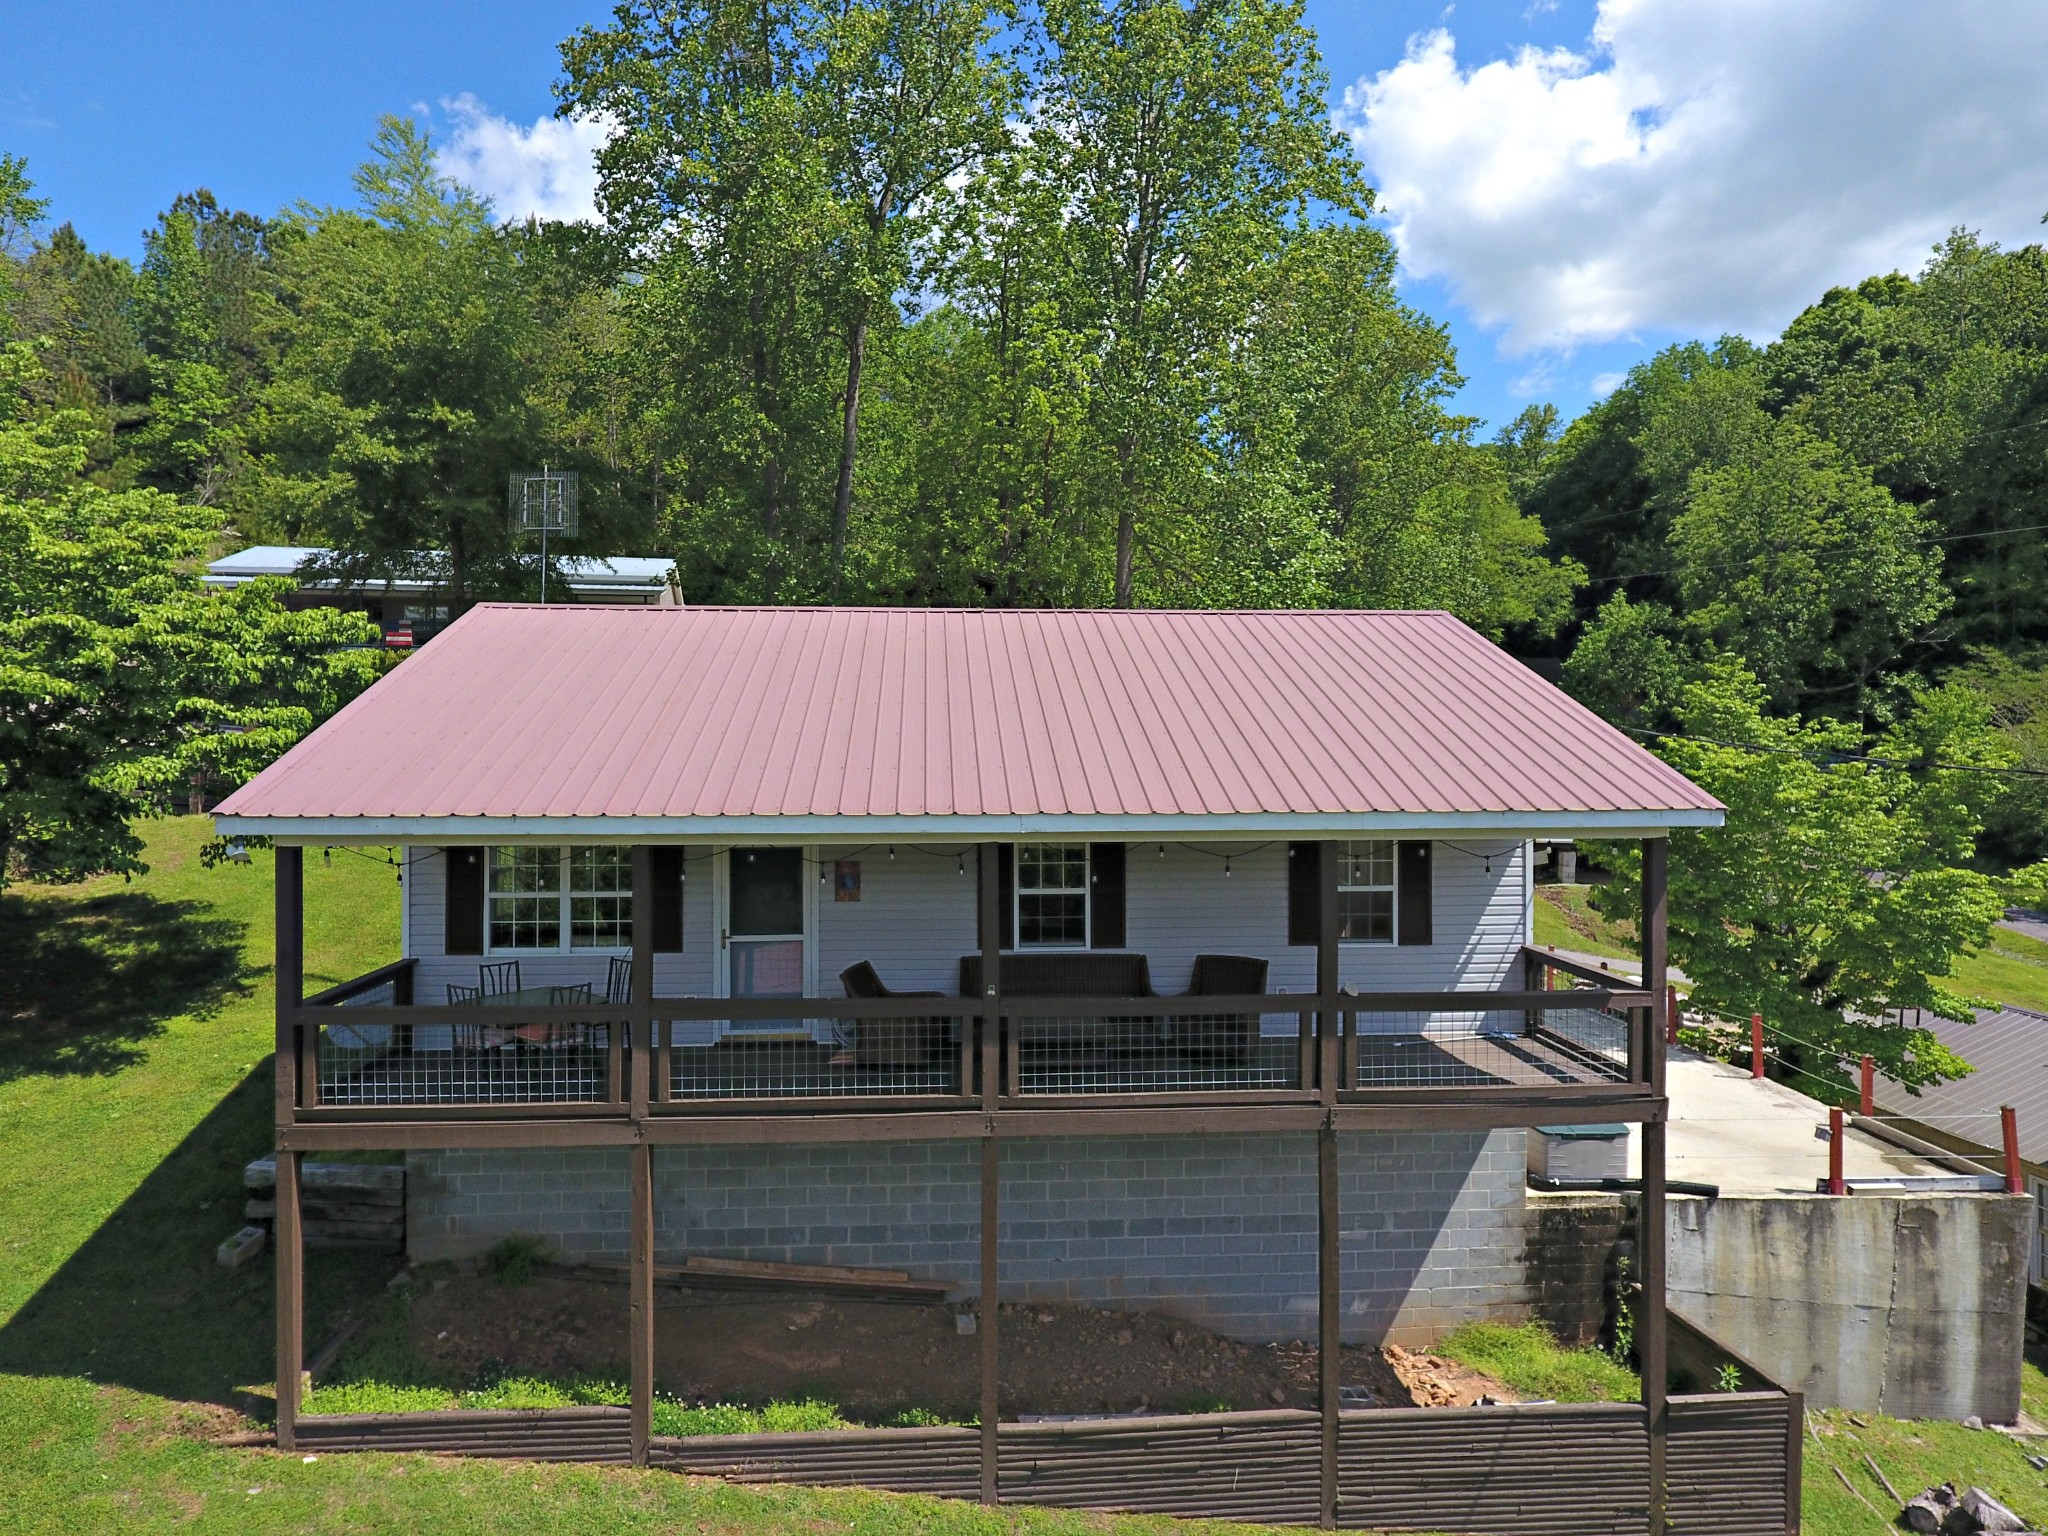 246 Hasty Rd, Lynchburg, TN 37352 - Lynchburg, TN real estate listing